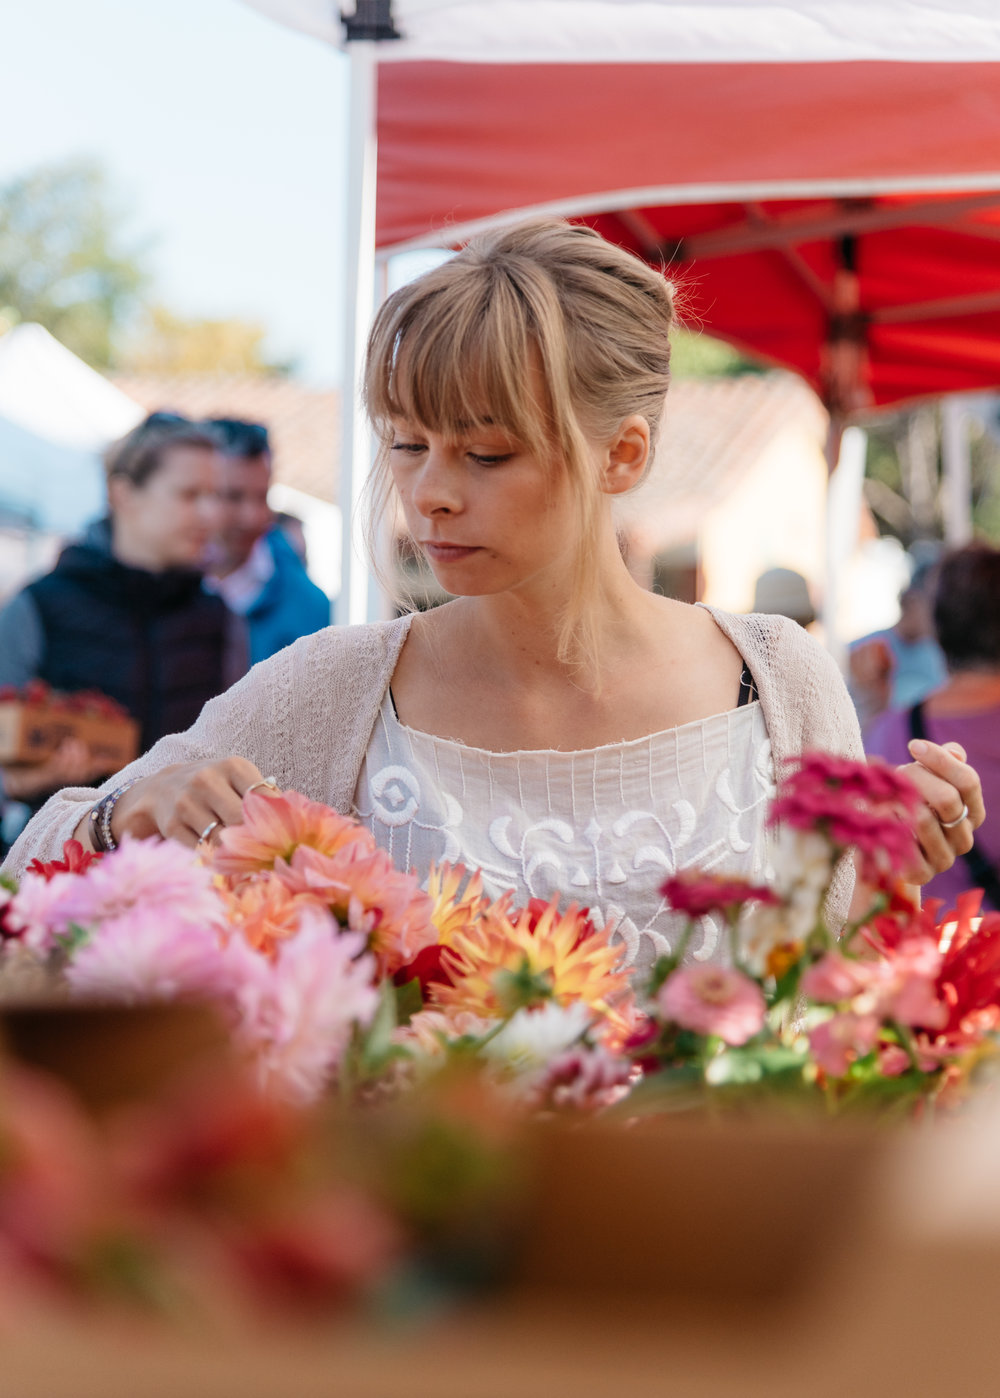 Nicole Fischer - Nicole is an intuitive chef, mystic, and creator of The Lunar Tea Company. Born on the wild and often rural Vancouver Island in Canada, Nicole grew up amongst the magic that is nature. Highly intuitive since childhood, Nicole is most at peace in nature or tinkering with her plants at home. A chef by trade, Nicole has also studied with a faction of the Berkeley Psychic Institute. The Lunar Tea Company came through weaving together those unique skills, and offers an accessible way to ground and sync your self with the Moon and Earth via its line of Moon Cycle Teas. Nicole has a deep belief in the ability of simple ritual to change lives and manifest dreams. She has found success personally in an at-home meditative tea ritual, and is excited to share that wisdom with others. Nicole lives with her partner and 13-year old hound, Sadie, by the beach in Santa Cruz.IG: @thelunarteacoIG: @depaysementsc